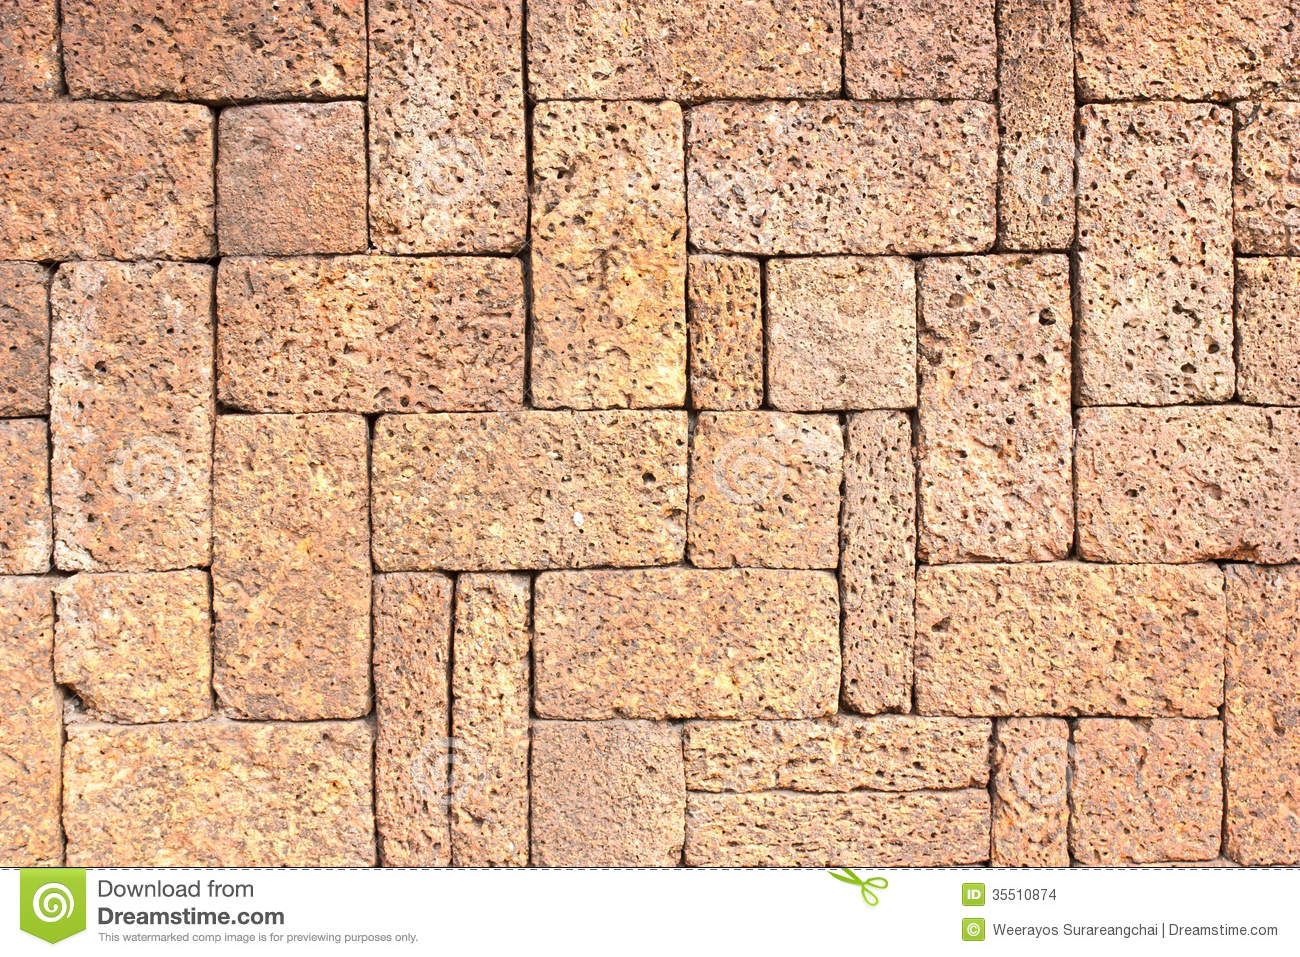 Laterite stone brick wall stock images image 35510874 - Background Brick Laterite Stone Wall